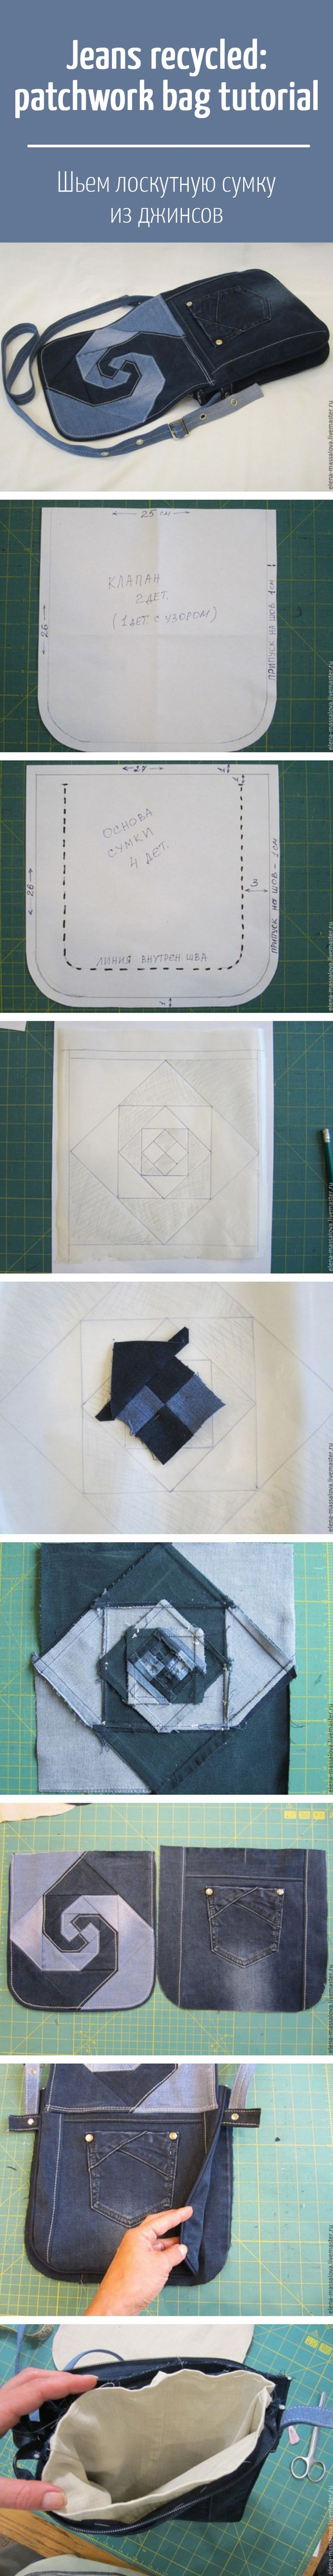 Jeans recycled: patchwork bag tutorial